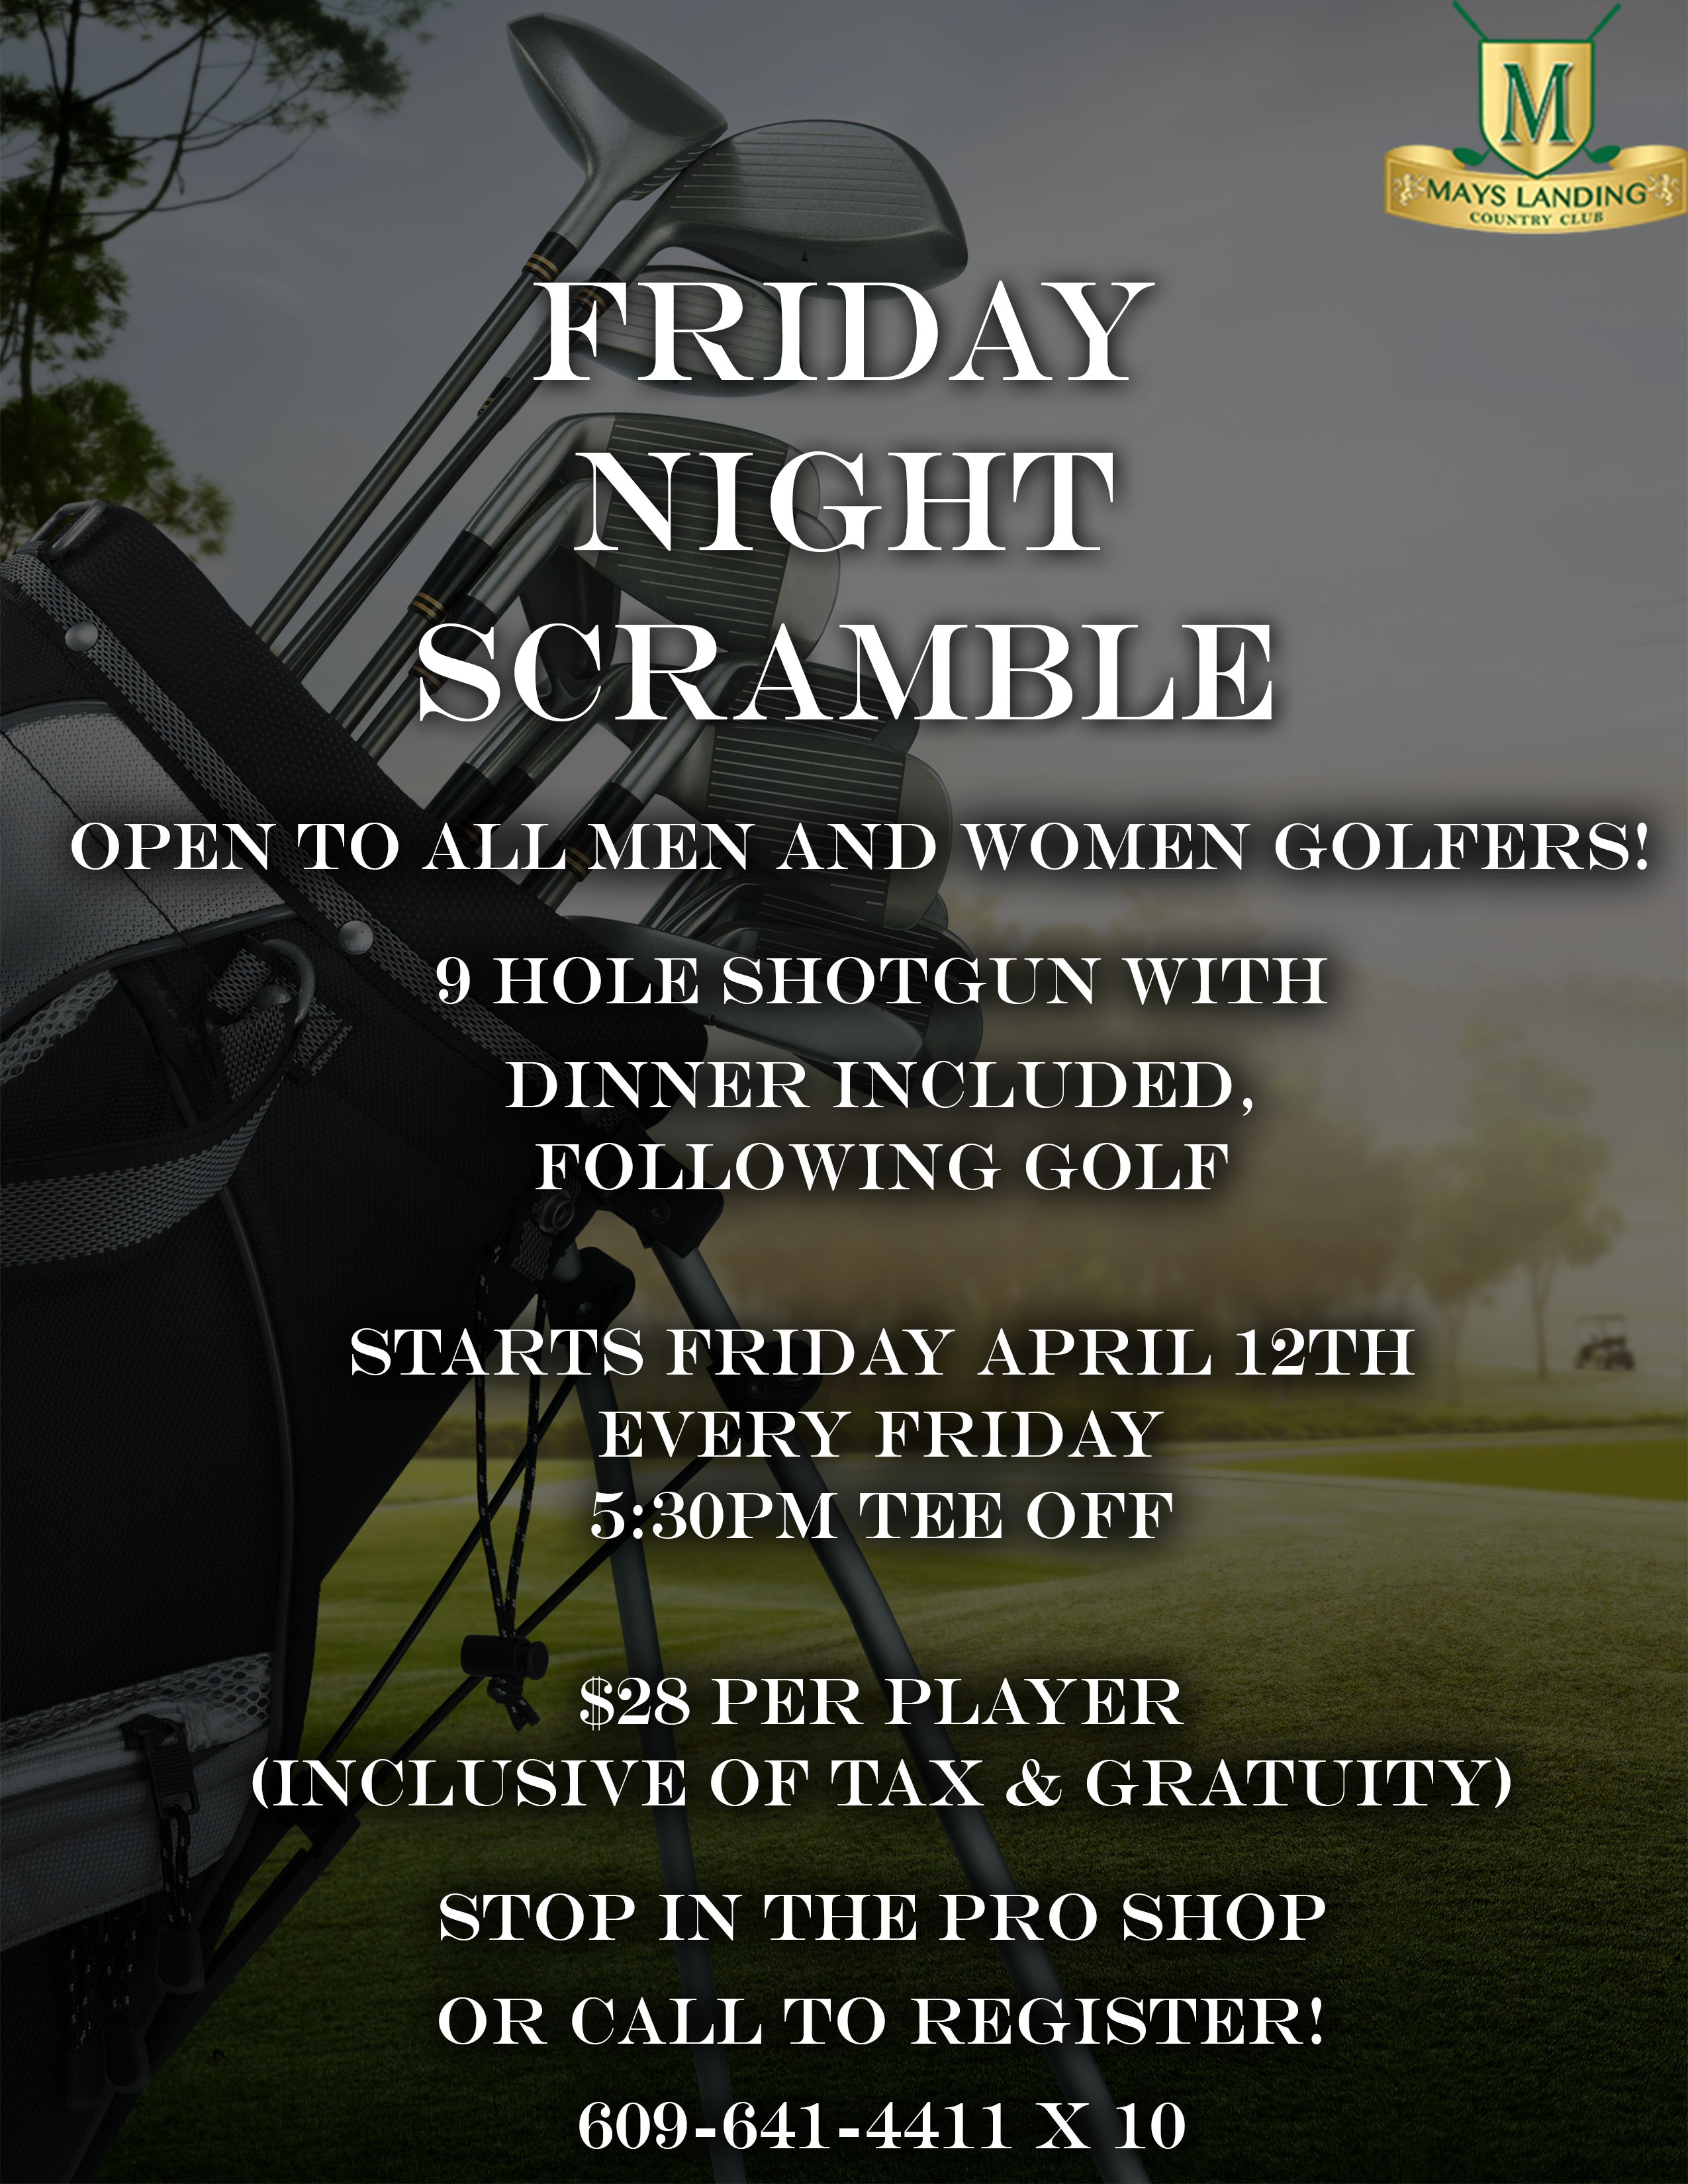 Friday Night Scramble! Open to all men and women golfers! 9 Hole Shotgun with Dinner included following Golf.  Starts Friday, April 12th. Every Friday 5:30 PM Tee Off.  $28 Per Player ( Inclusive of Tax & Gratuity) Stop in the pro shop or call to register! 609-641-4411